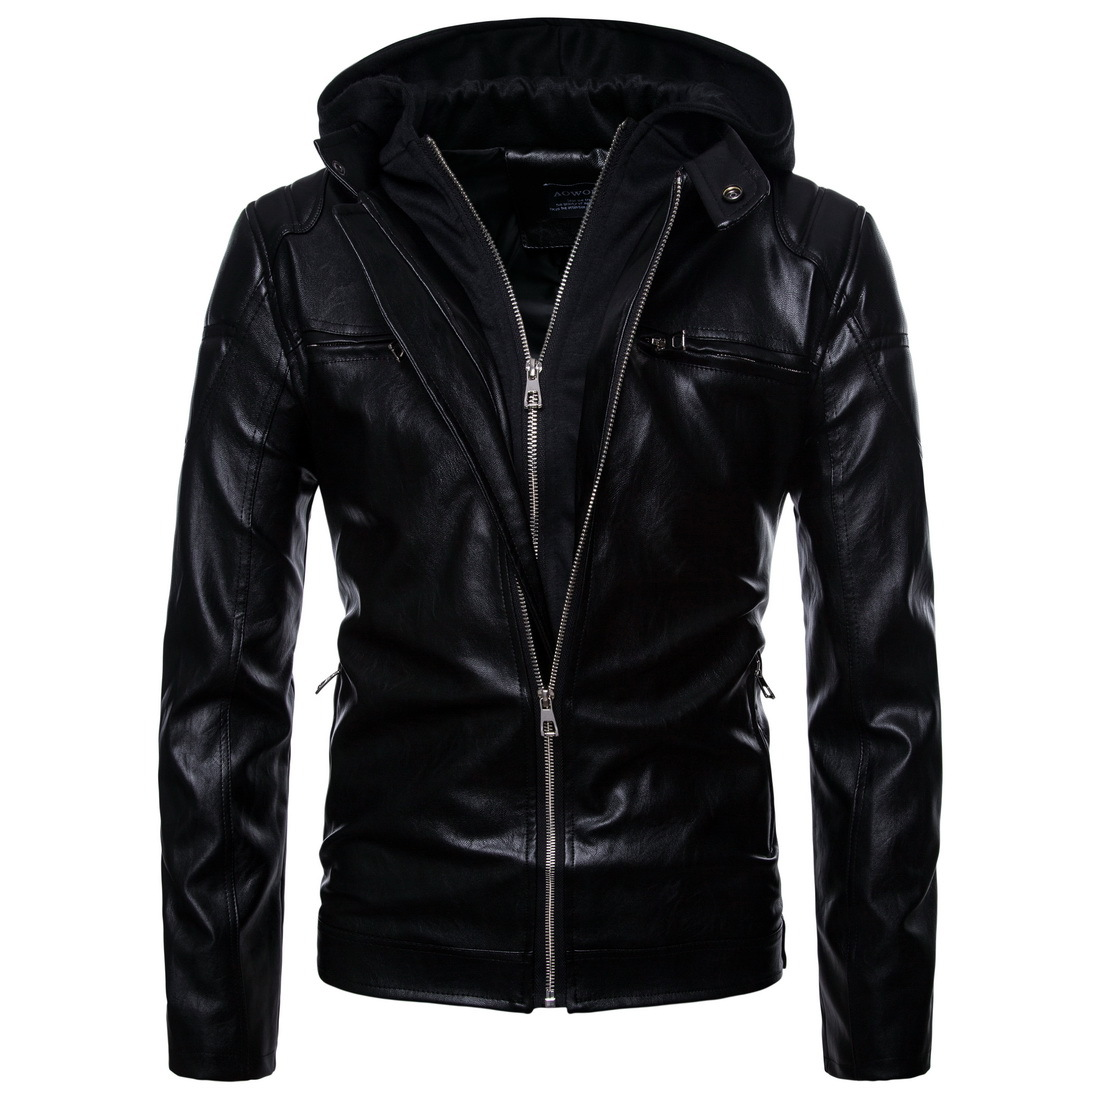 Men Locomotive Leather Jackets Mens Hoodie PU Coat Jaqueta De Couro Masculina Fashion Designer Slim Leather Outwear